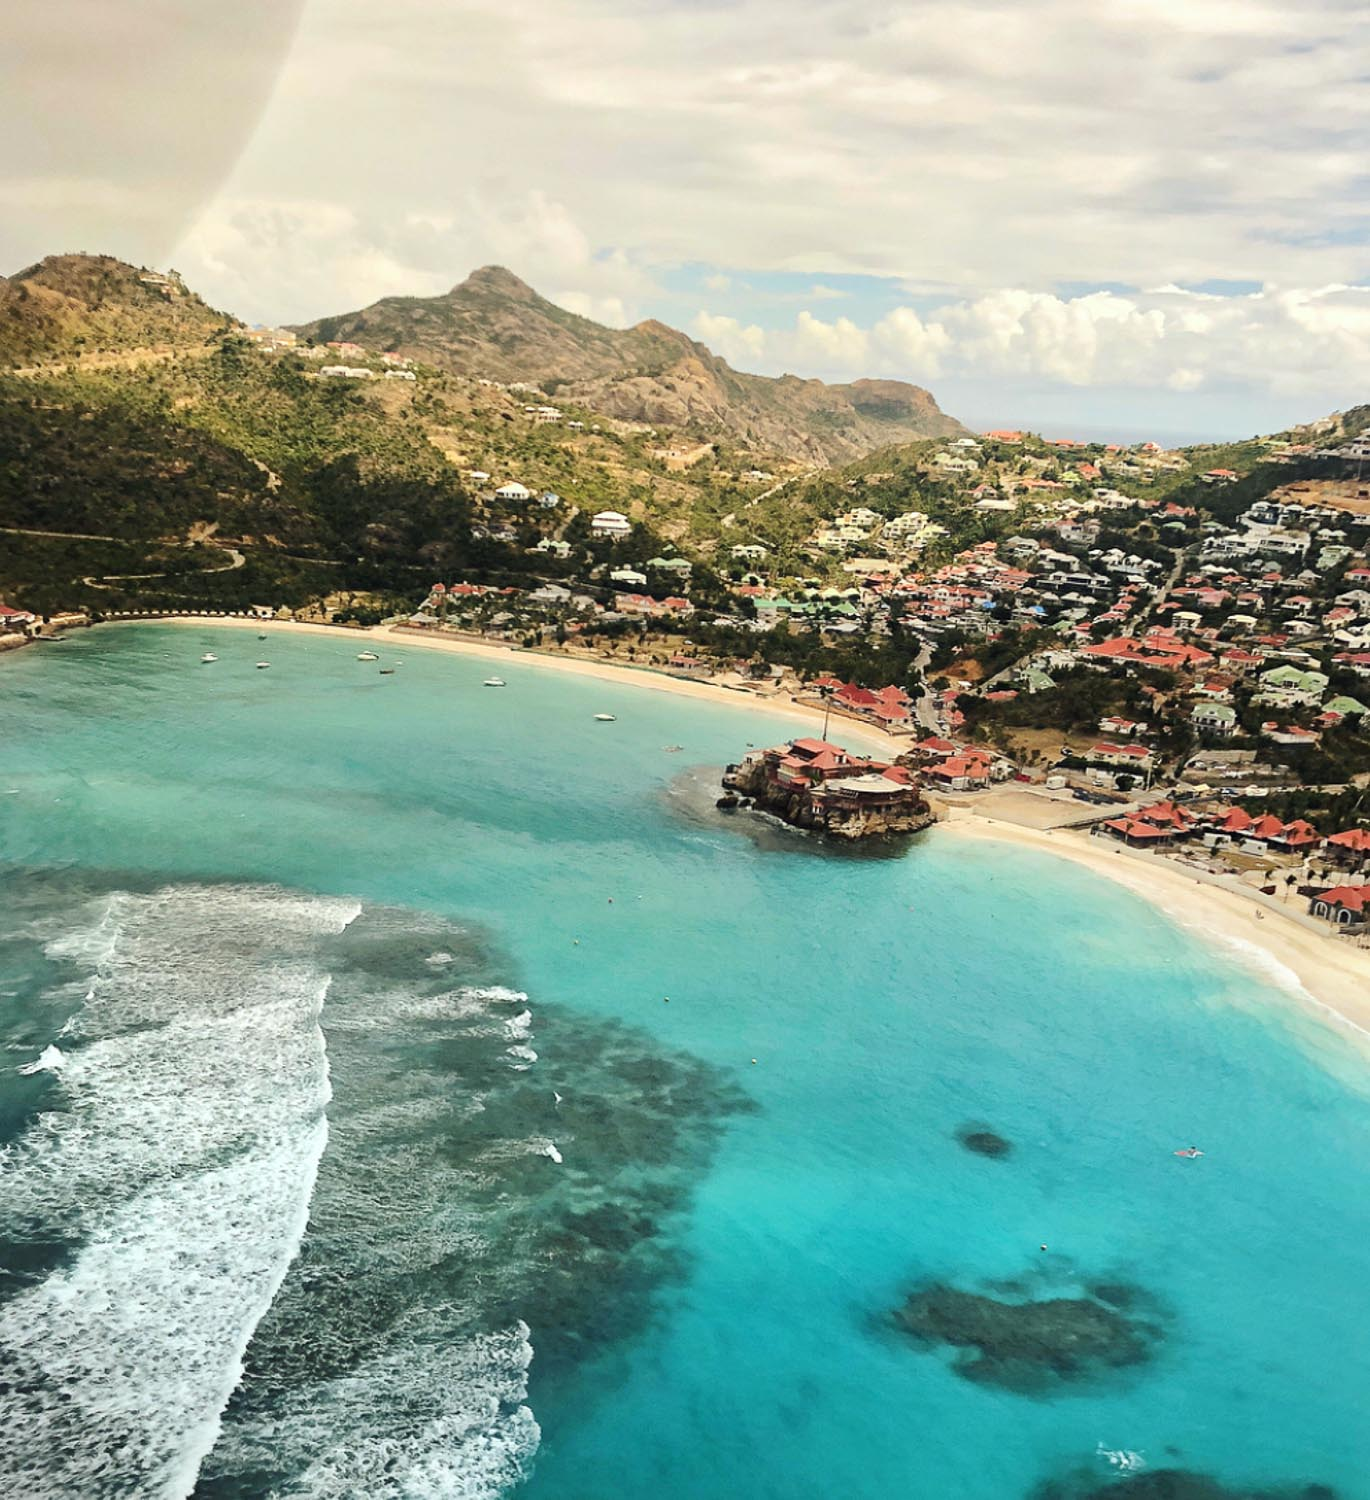 St Barths Unfiltered (22 of 23).jpg